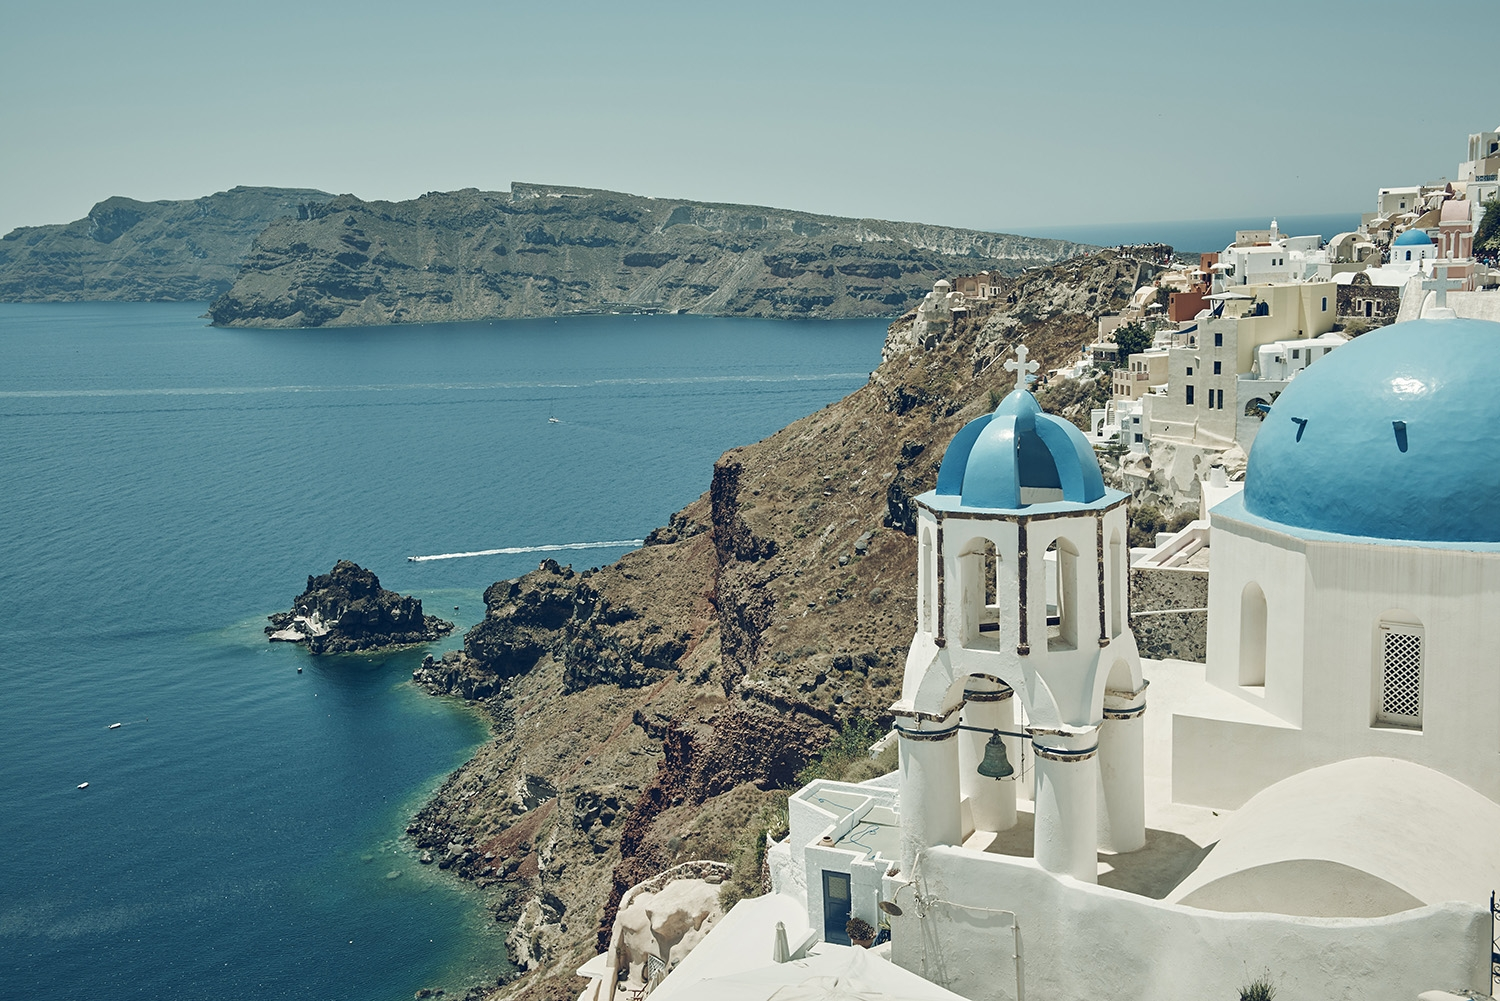 A cliffside white and blue chapel with views of the surrounding mountains and ocean